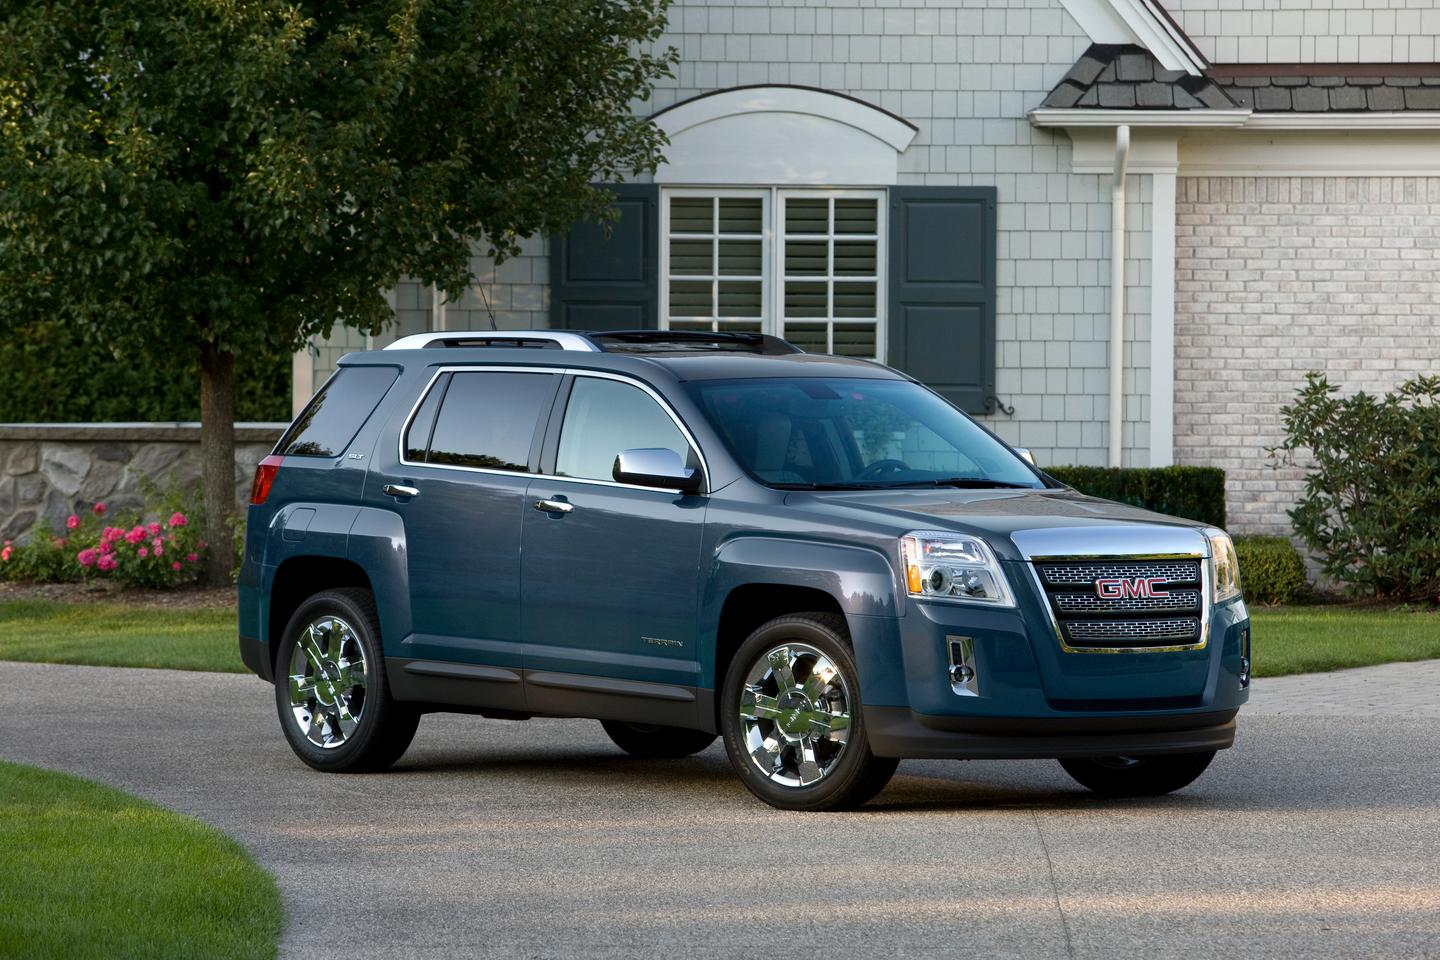 The 2012 GMC Terrain offers the IntelLink system as an option